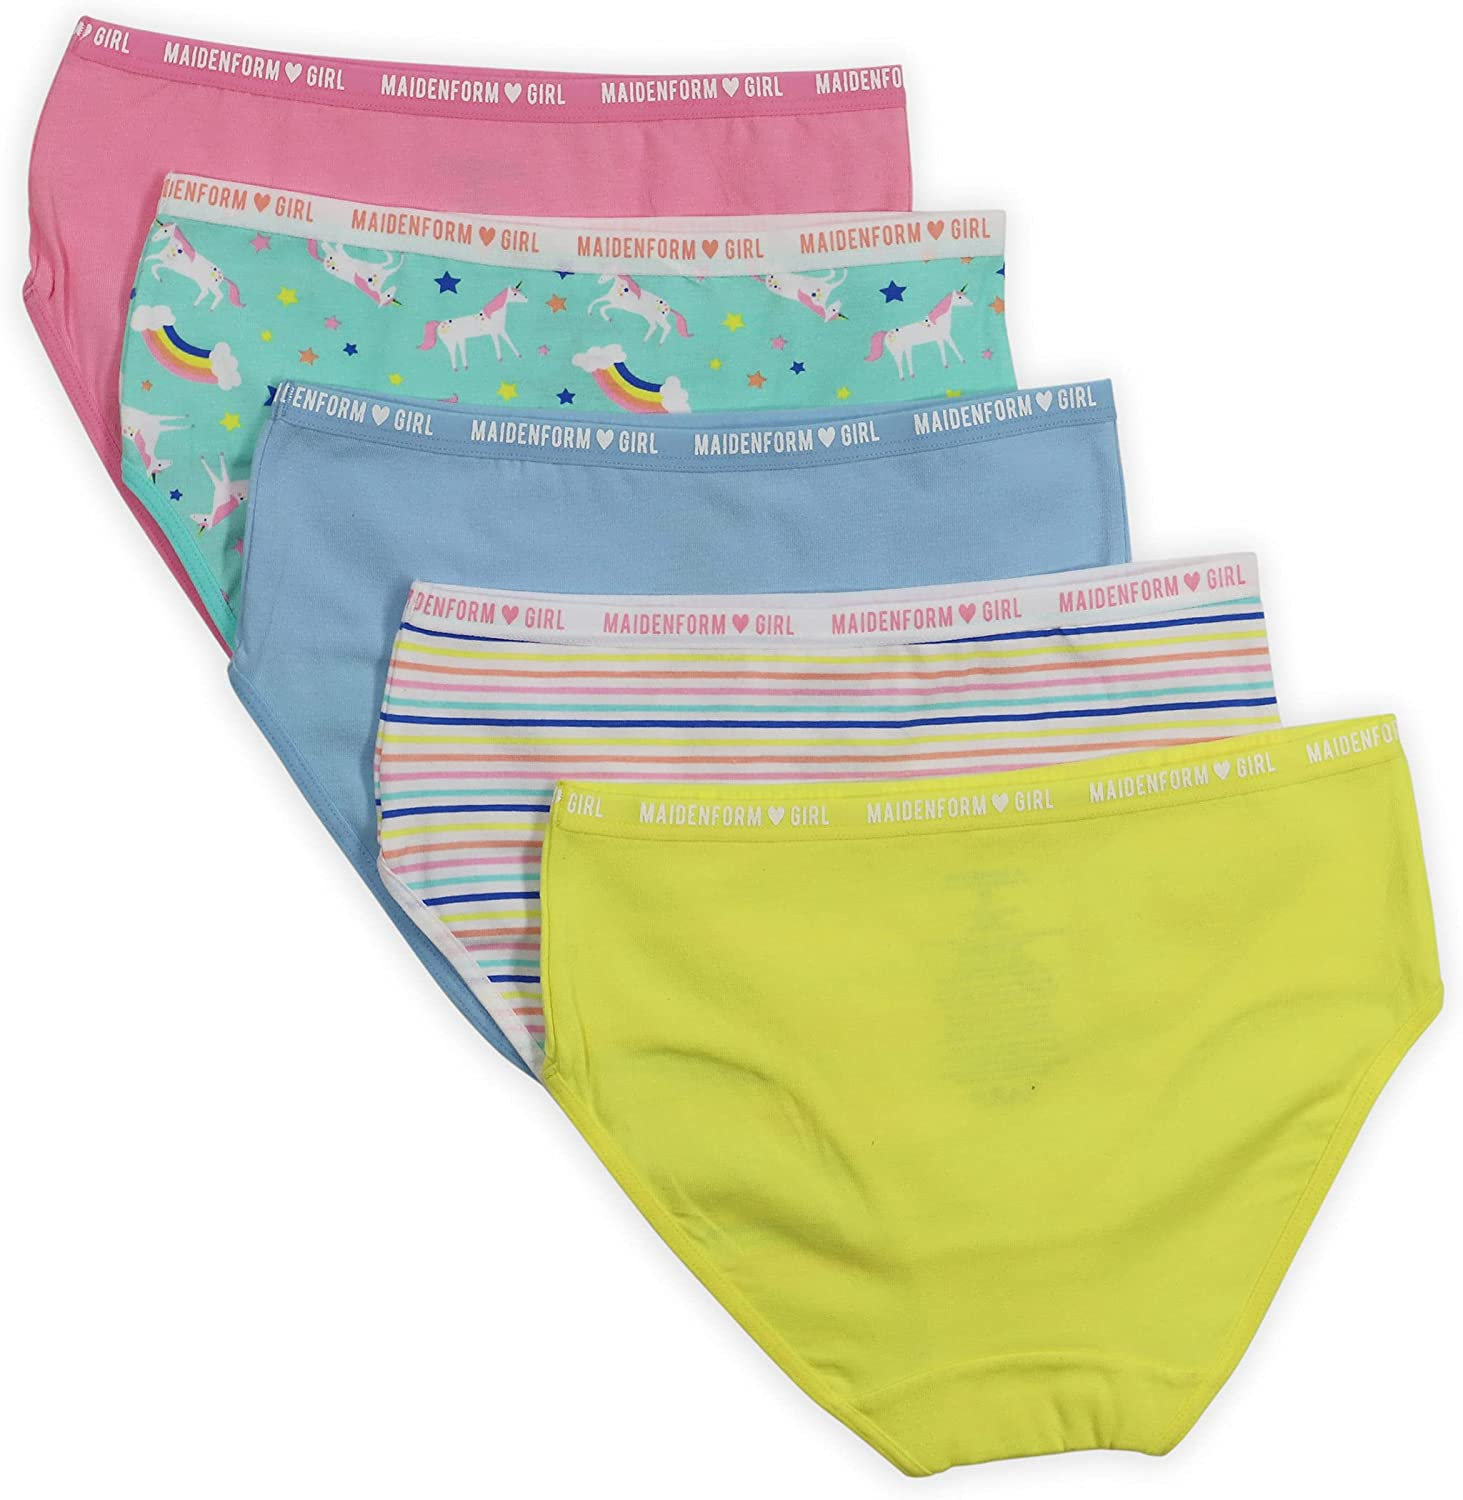 Maidenform Girls' Cotton Ranking integrated 1st Cheap mail order sales place Brief Panties 5 Pack